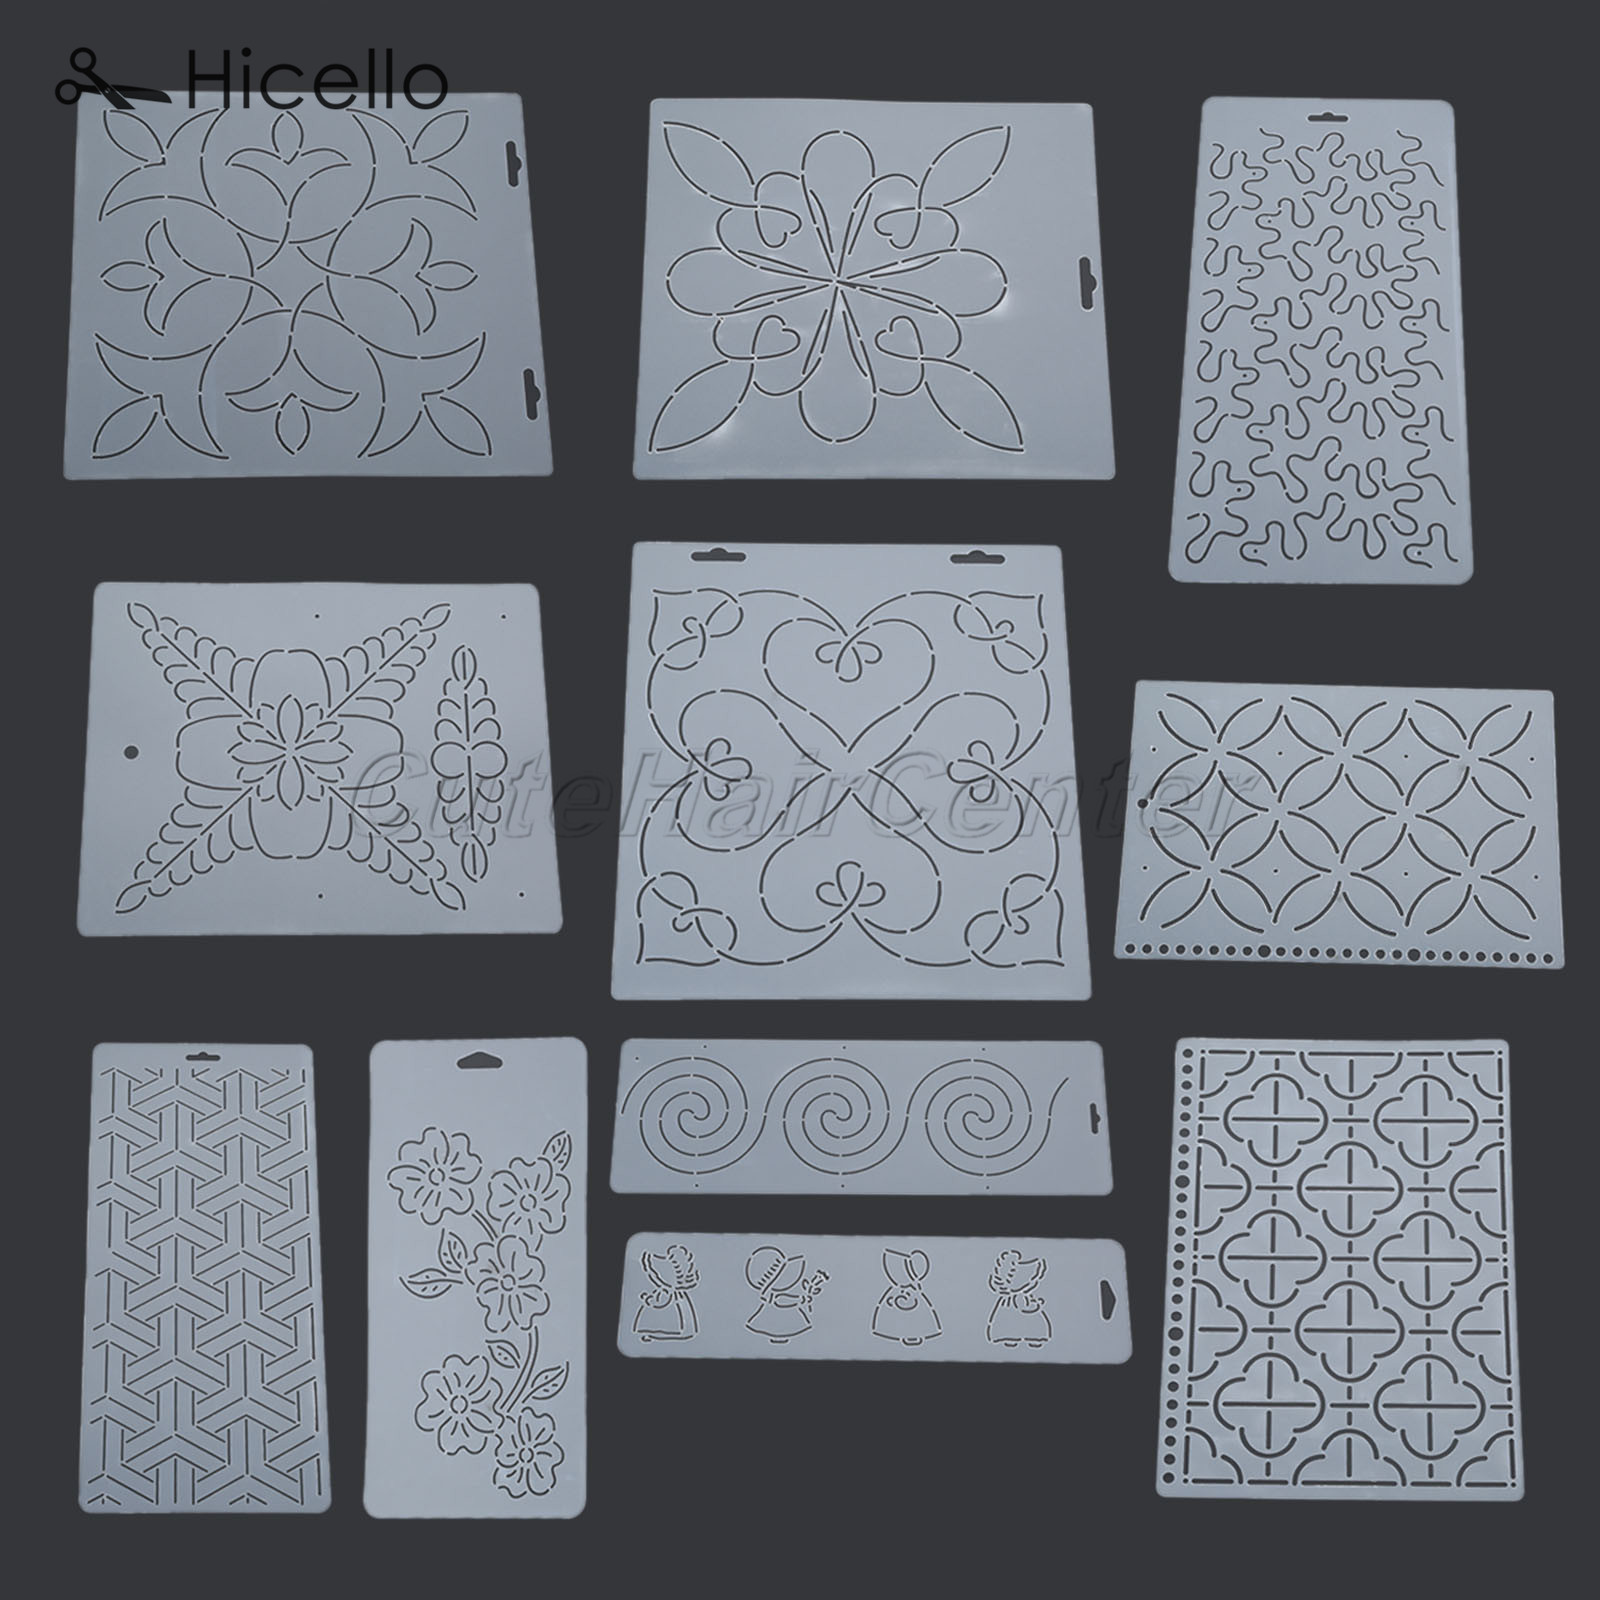 perfektchoice 3pcs Plastic Quilt Stencil Template Patchwork for DIY Sewing Embroidery